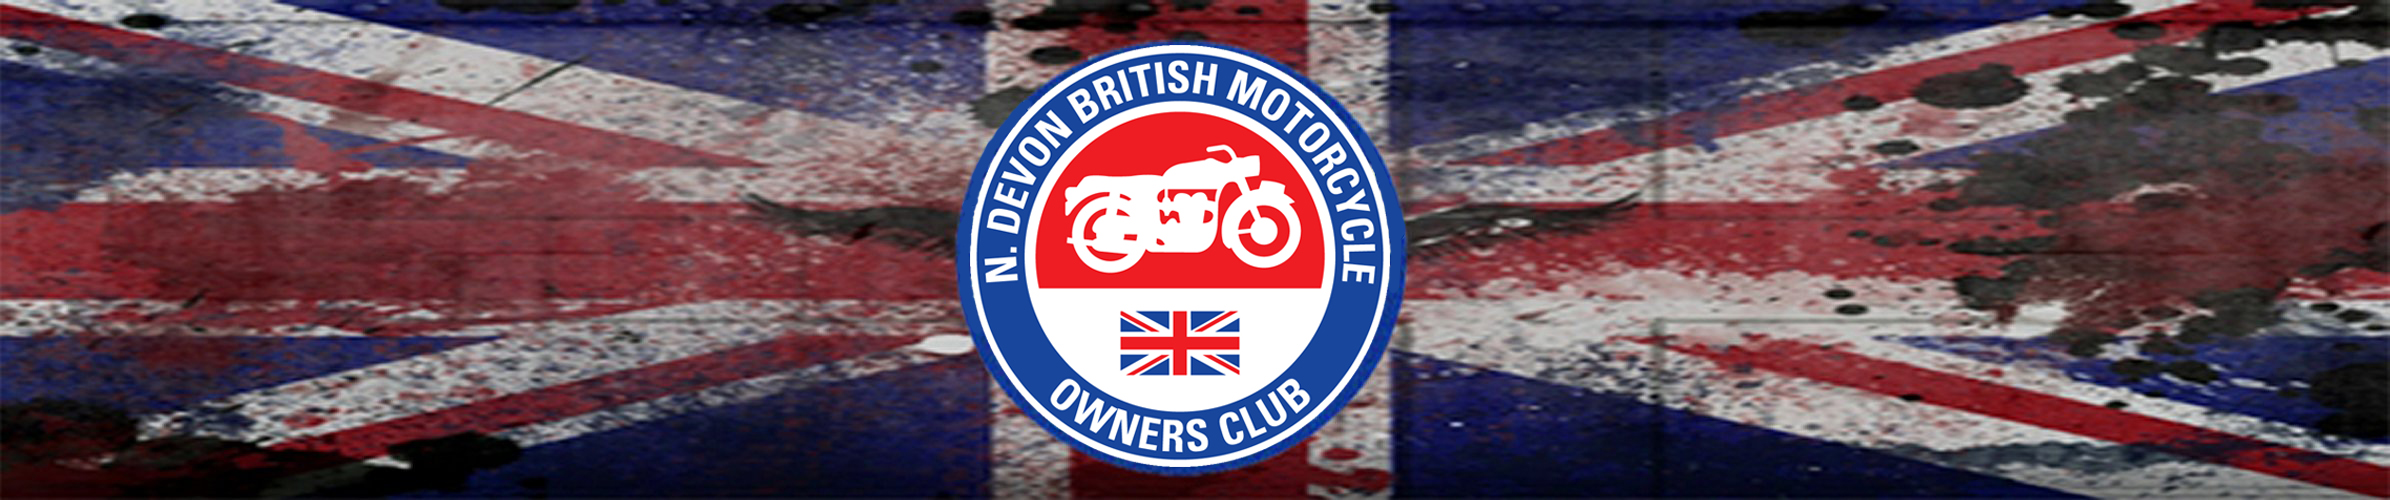 North Devon British Motorcycle Owners Club